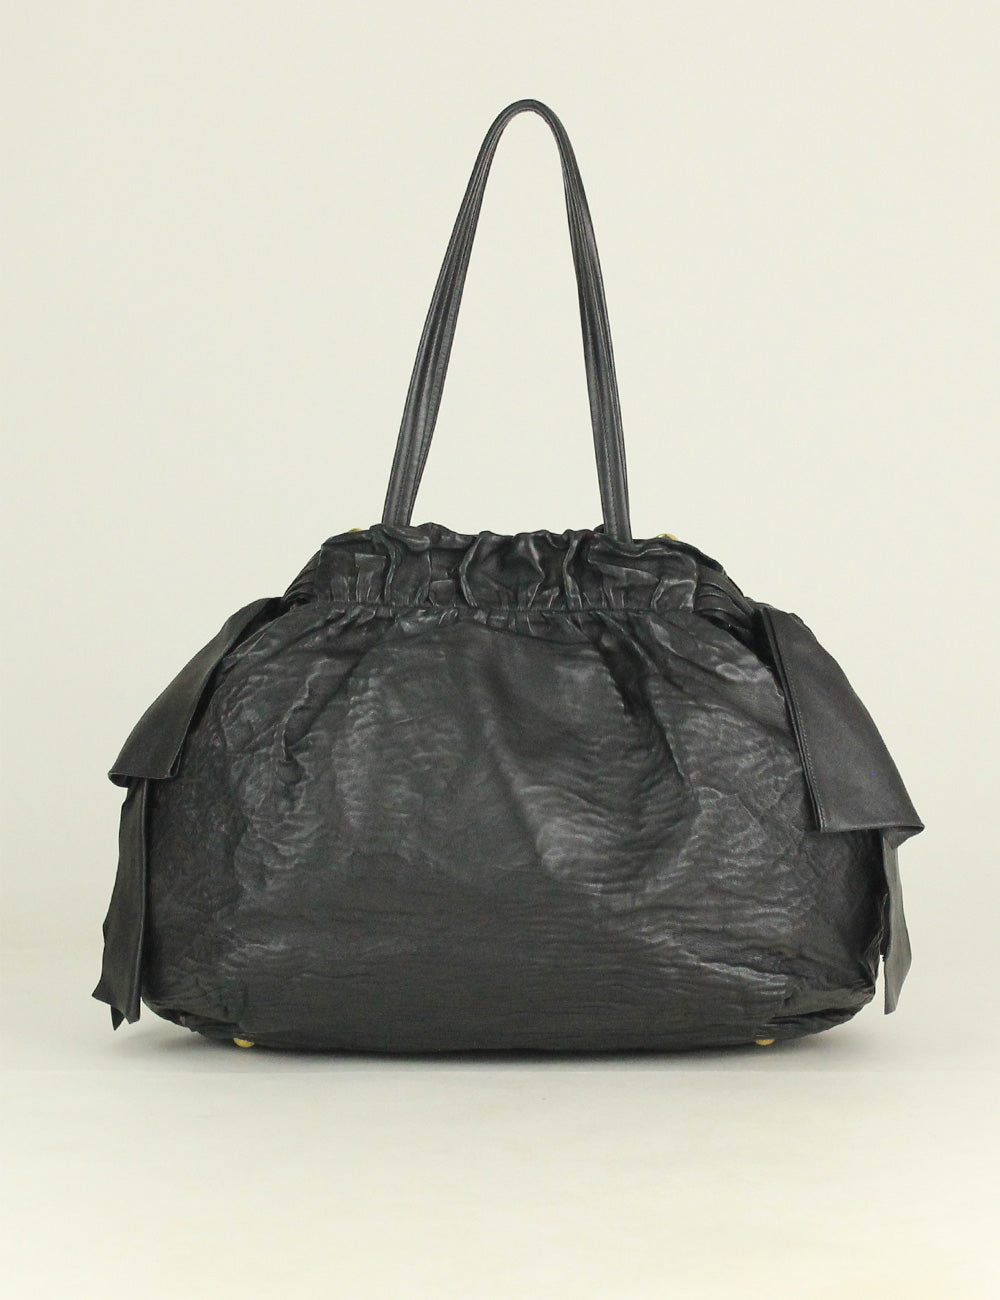 PRADA <br> Bow Large Satchel 2-way Bag